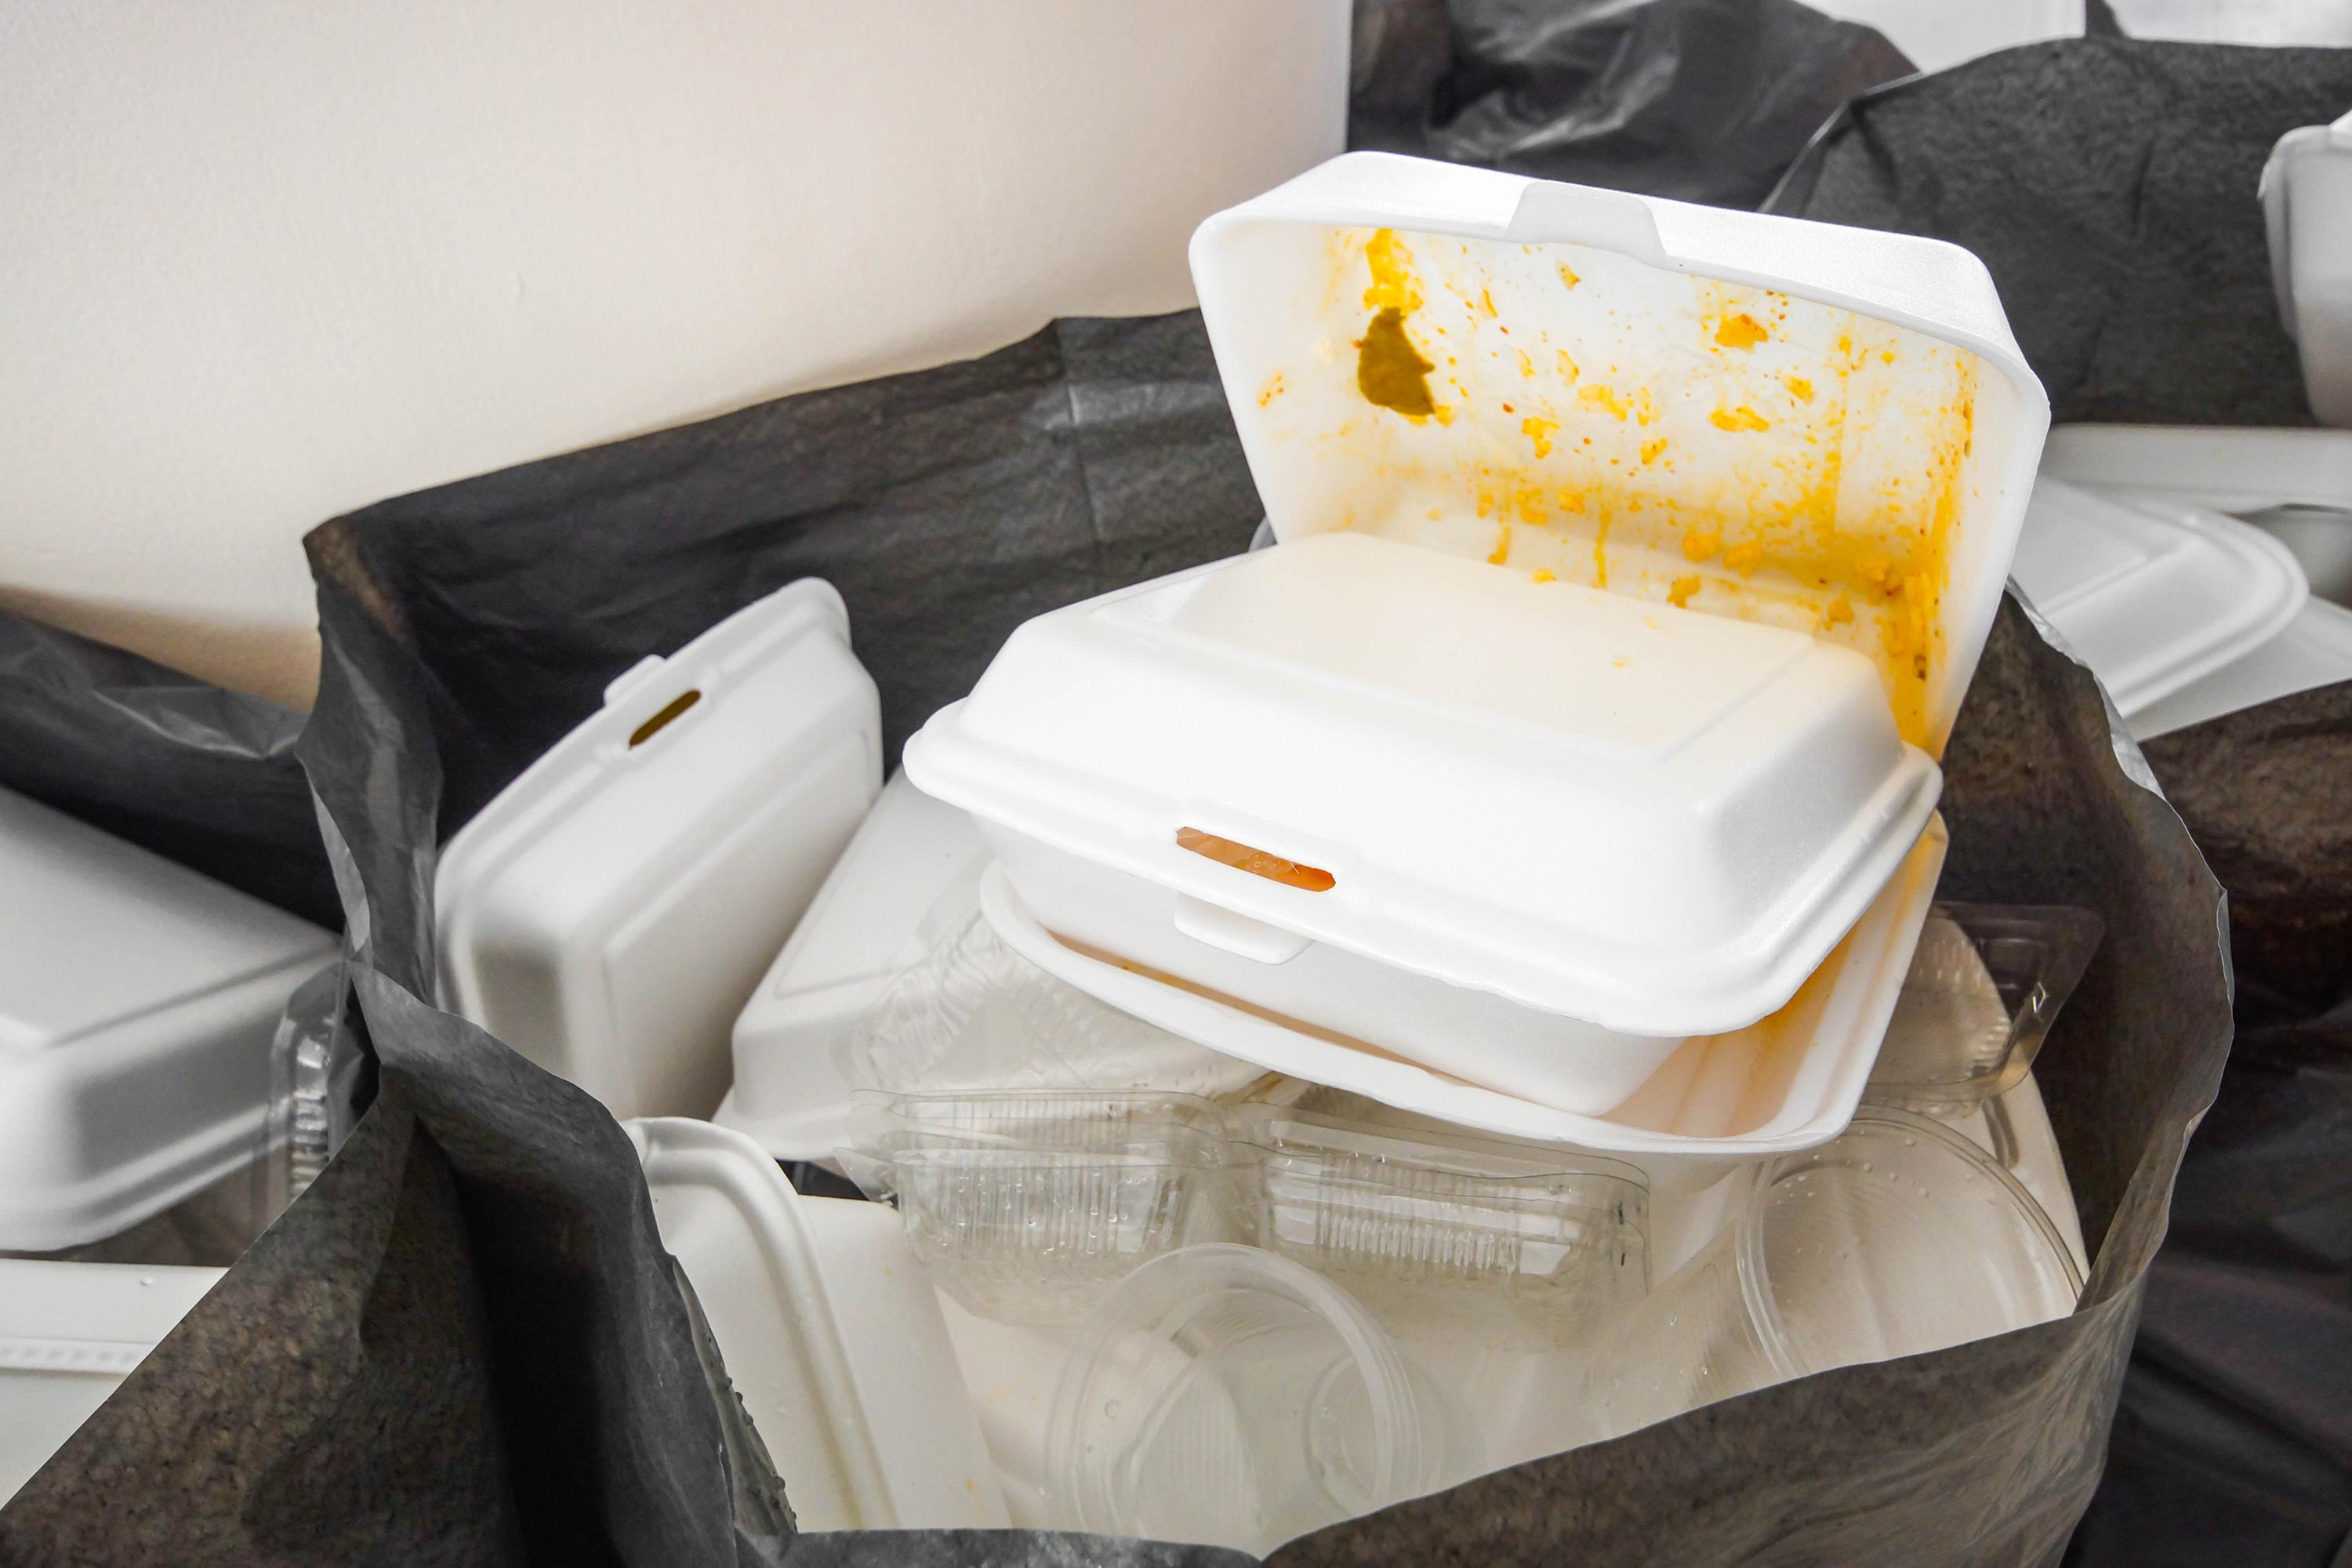 Next week, Maryland starts ban on foam containers for carryout food. Not everyone is happy